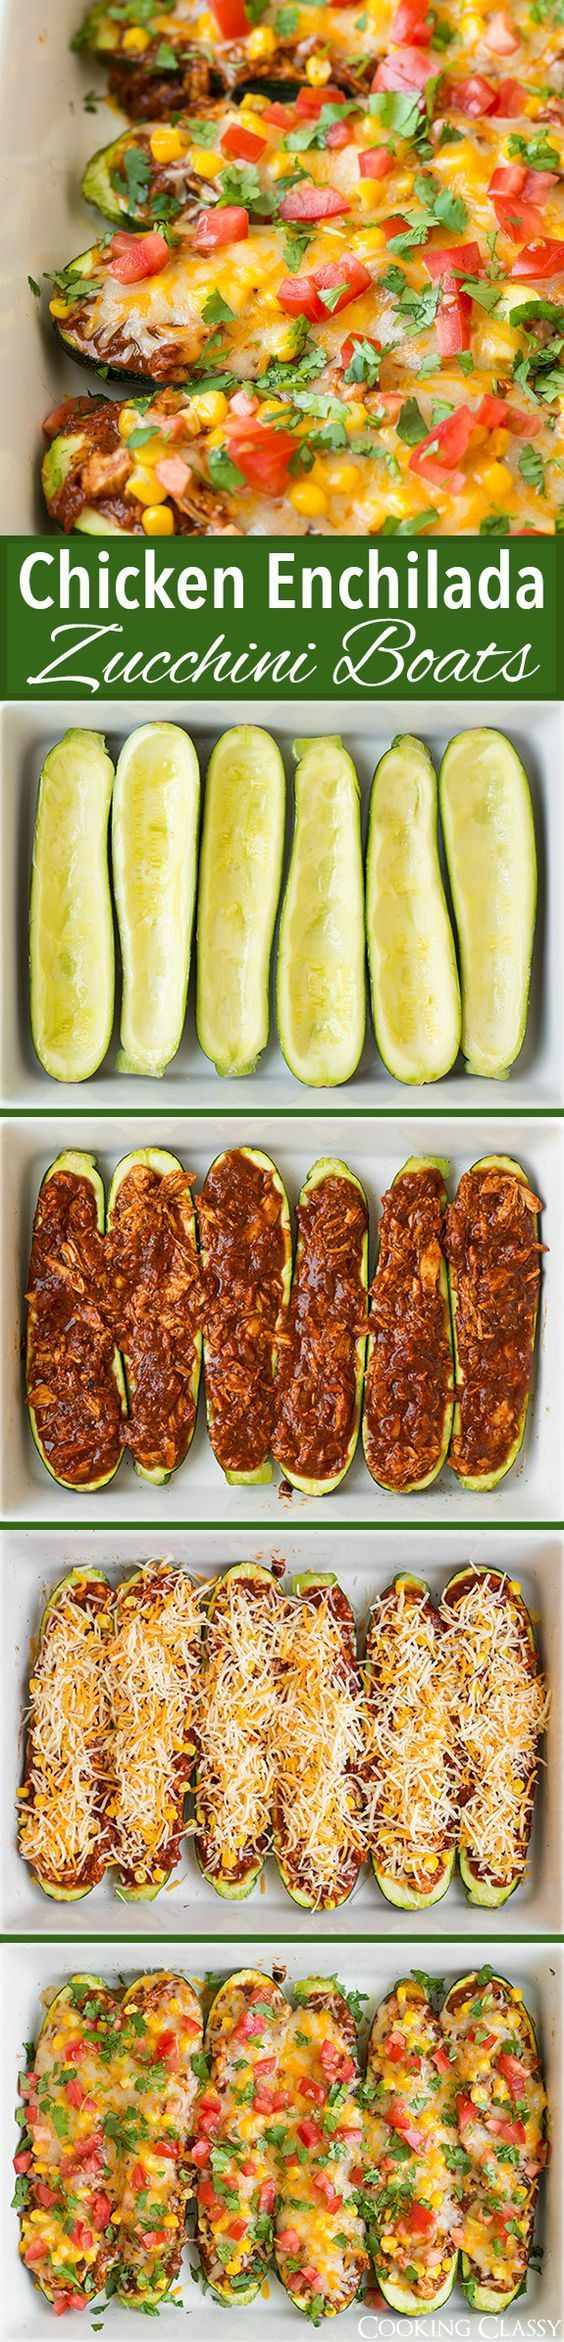 These Enchilada Zucchini Boats are one of the recipes that I've had on my mind for a long time and finally made it a reality now that it's summer and zucchini is in massive abundance at our house